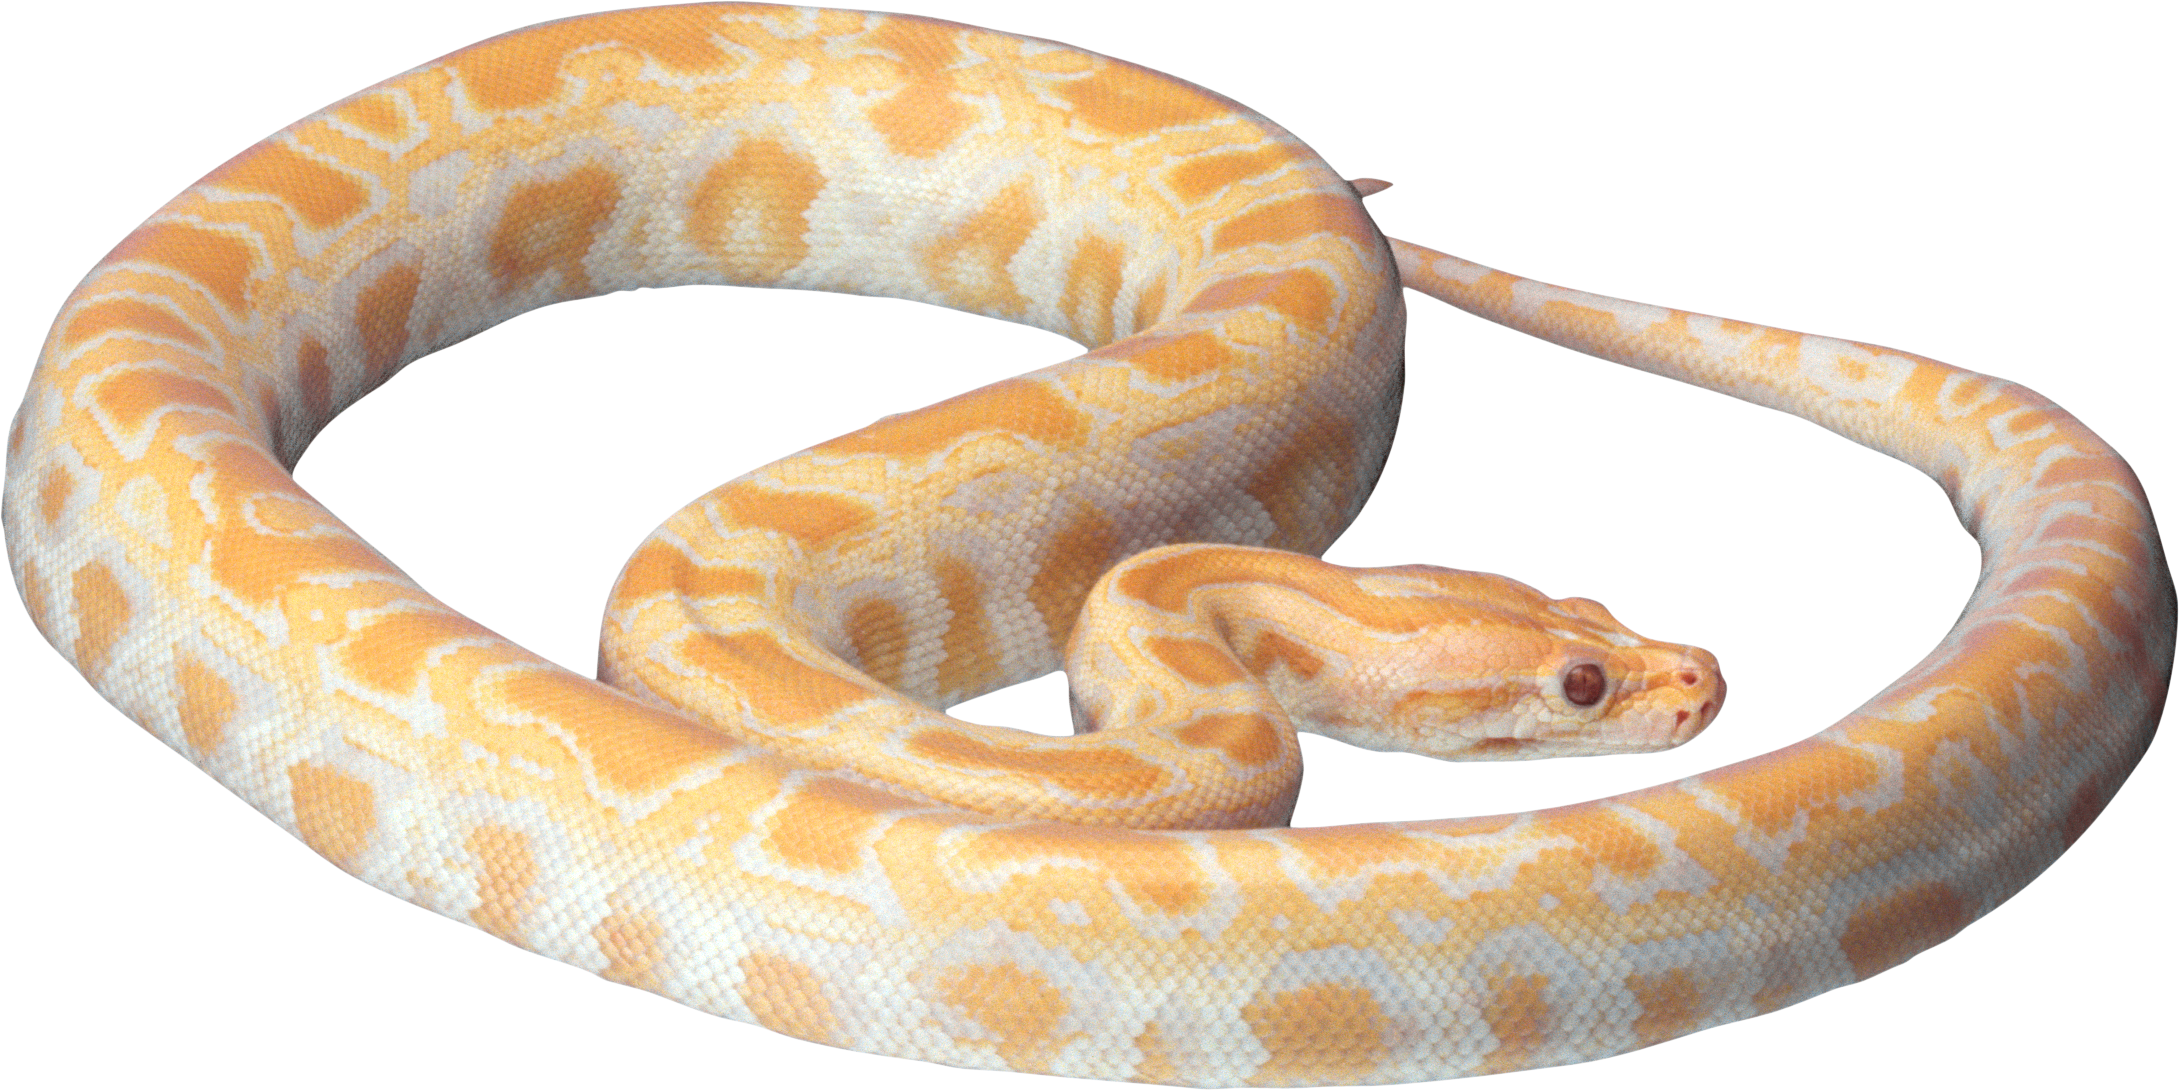 Png animal pinterest. Tooth clipart snake